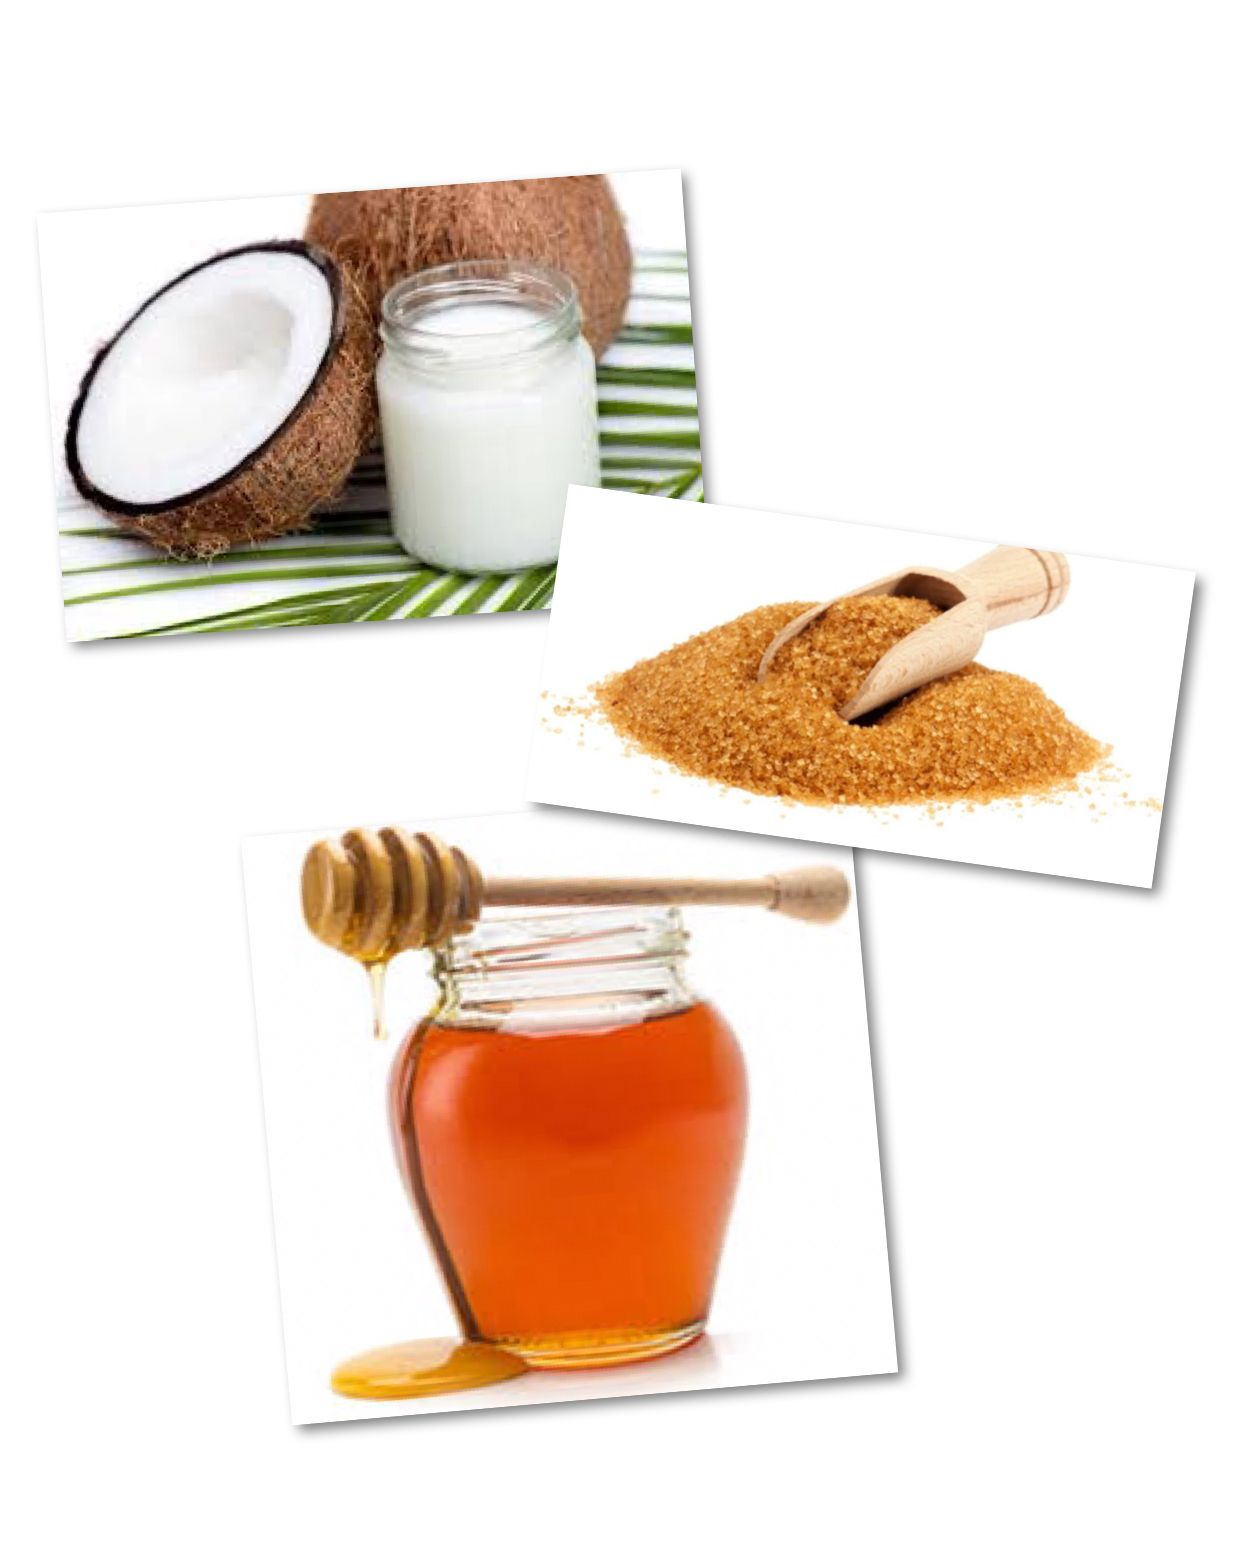 Diy lip scrub homemade recipe ingredients with images